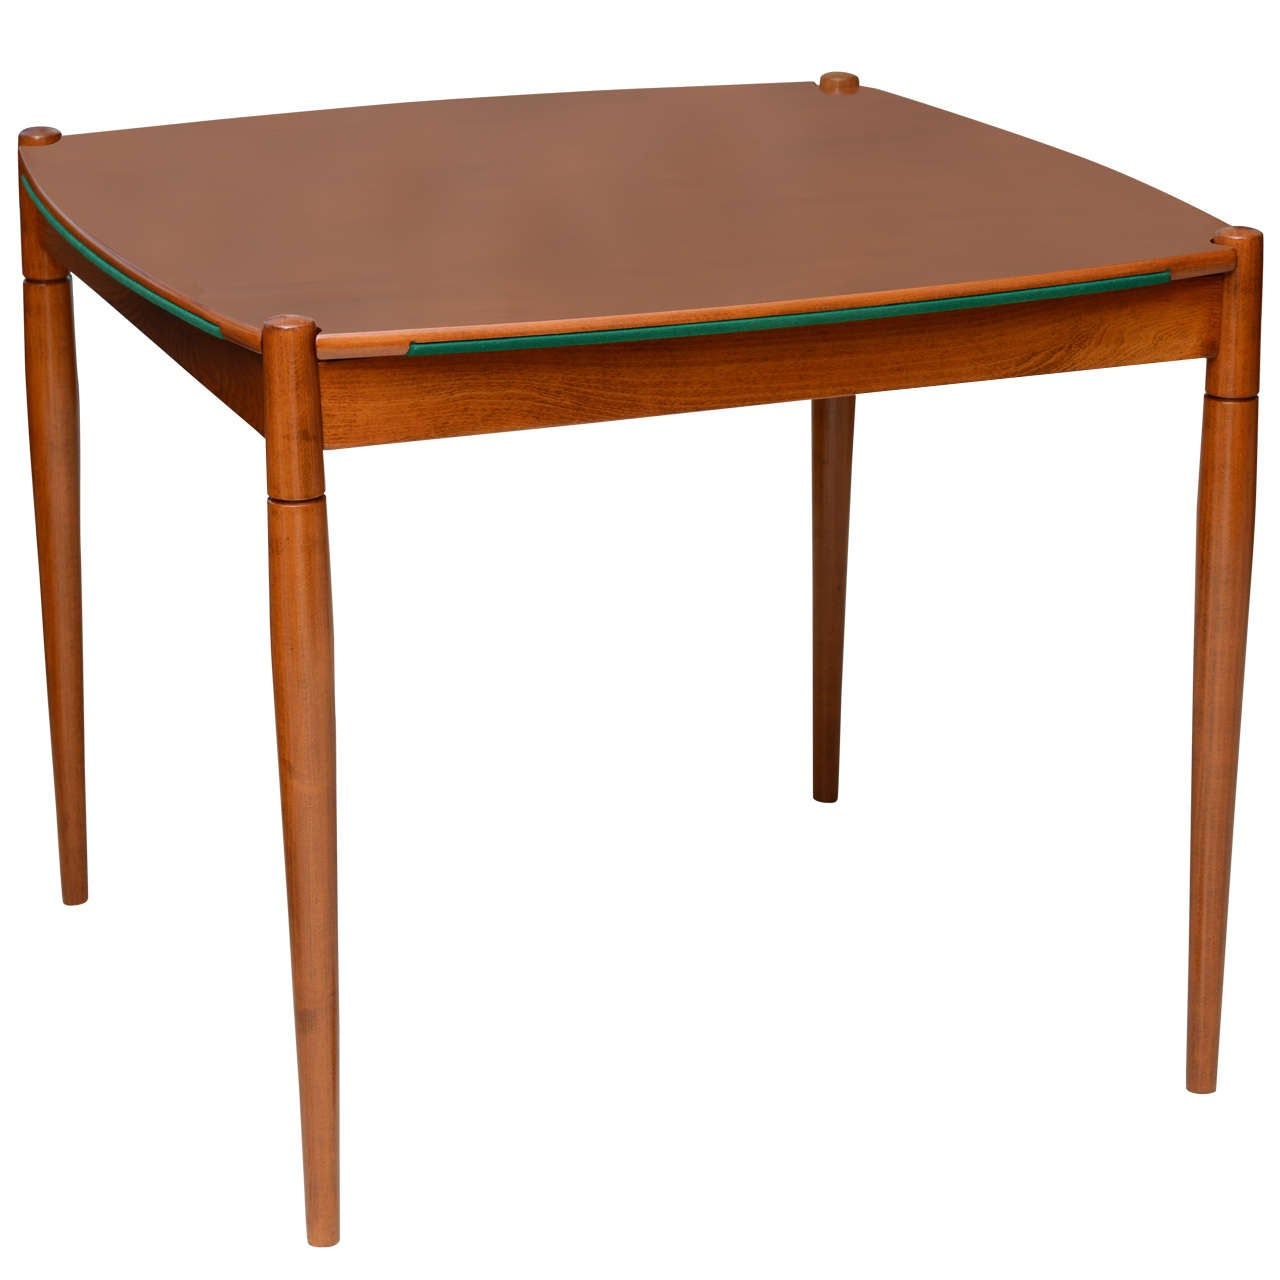 An italian modern walnut game table by gio ponti for for Contemporary game table and chairs